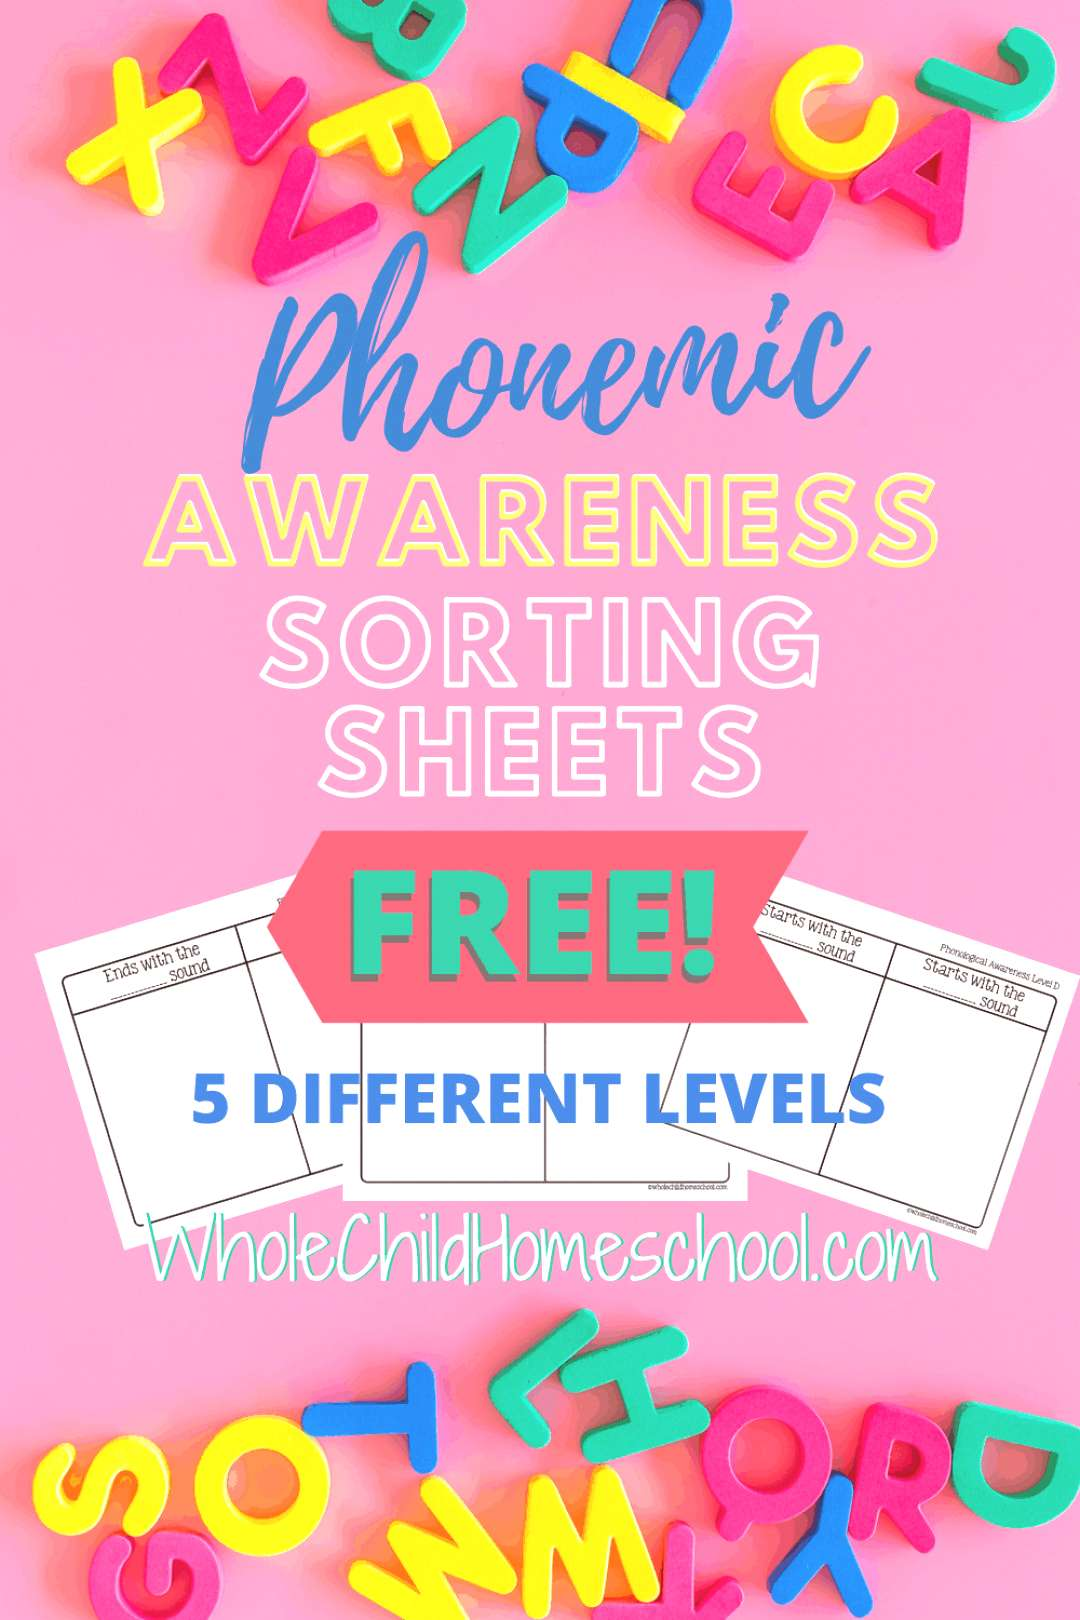 Small Object Sound Sorting Sheets Did you know that phonemic awareness (the understanding that word